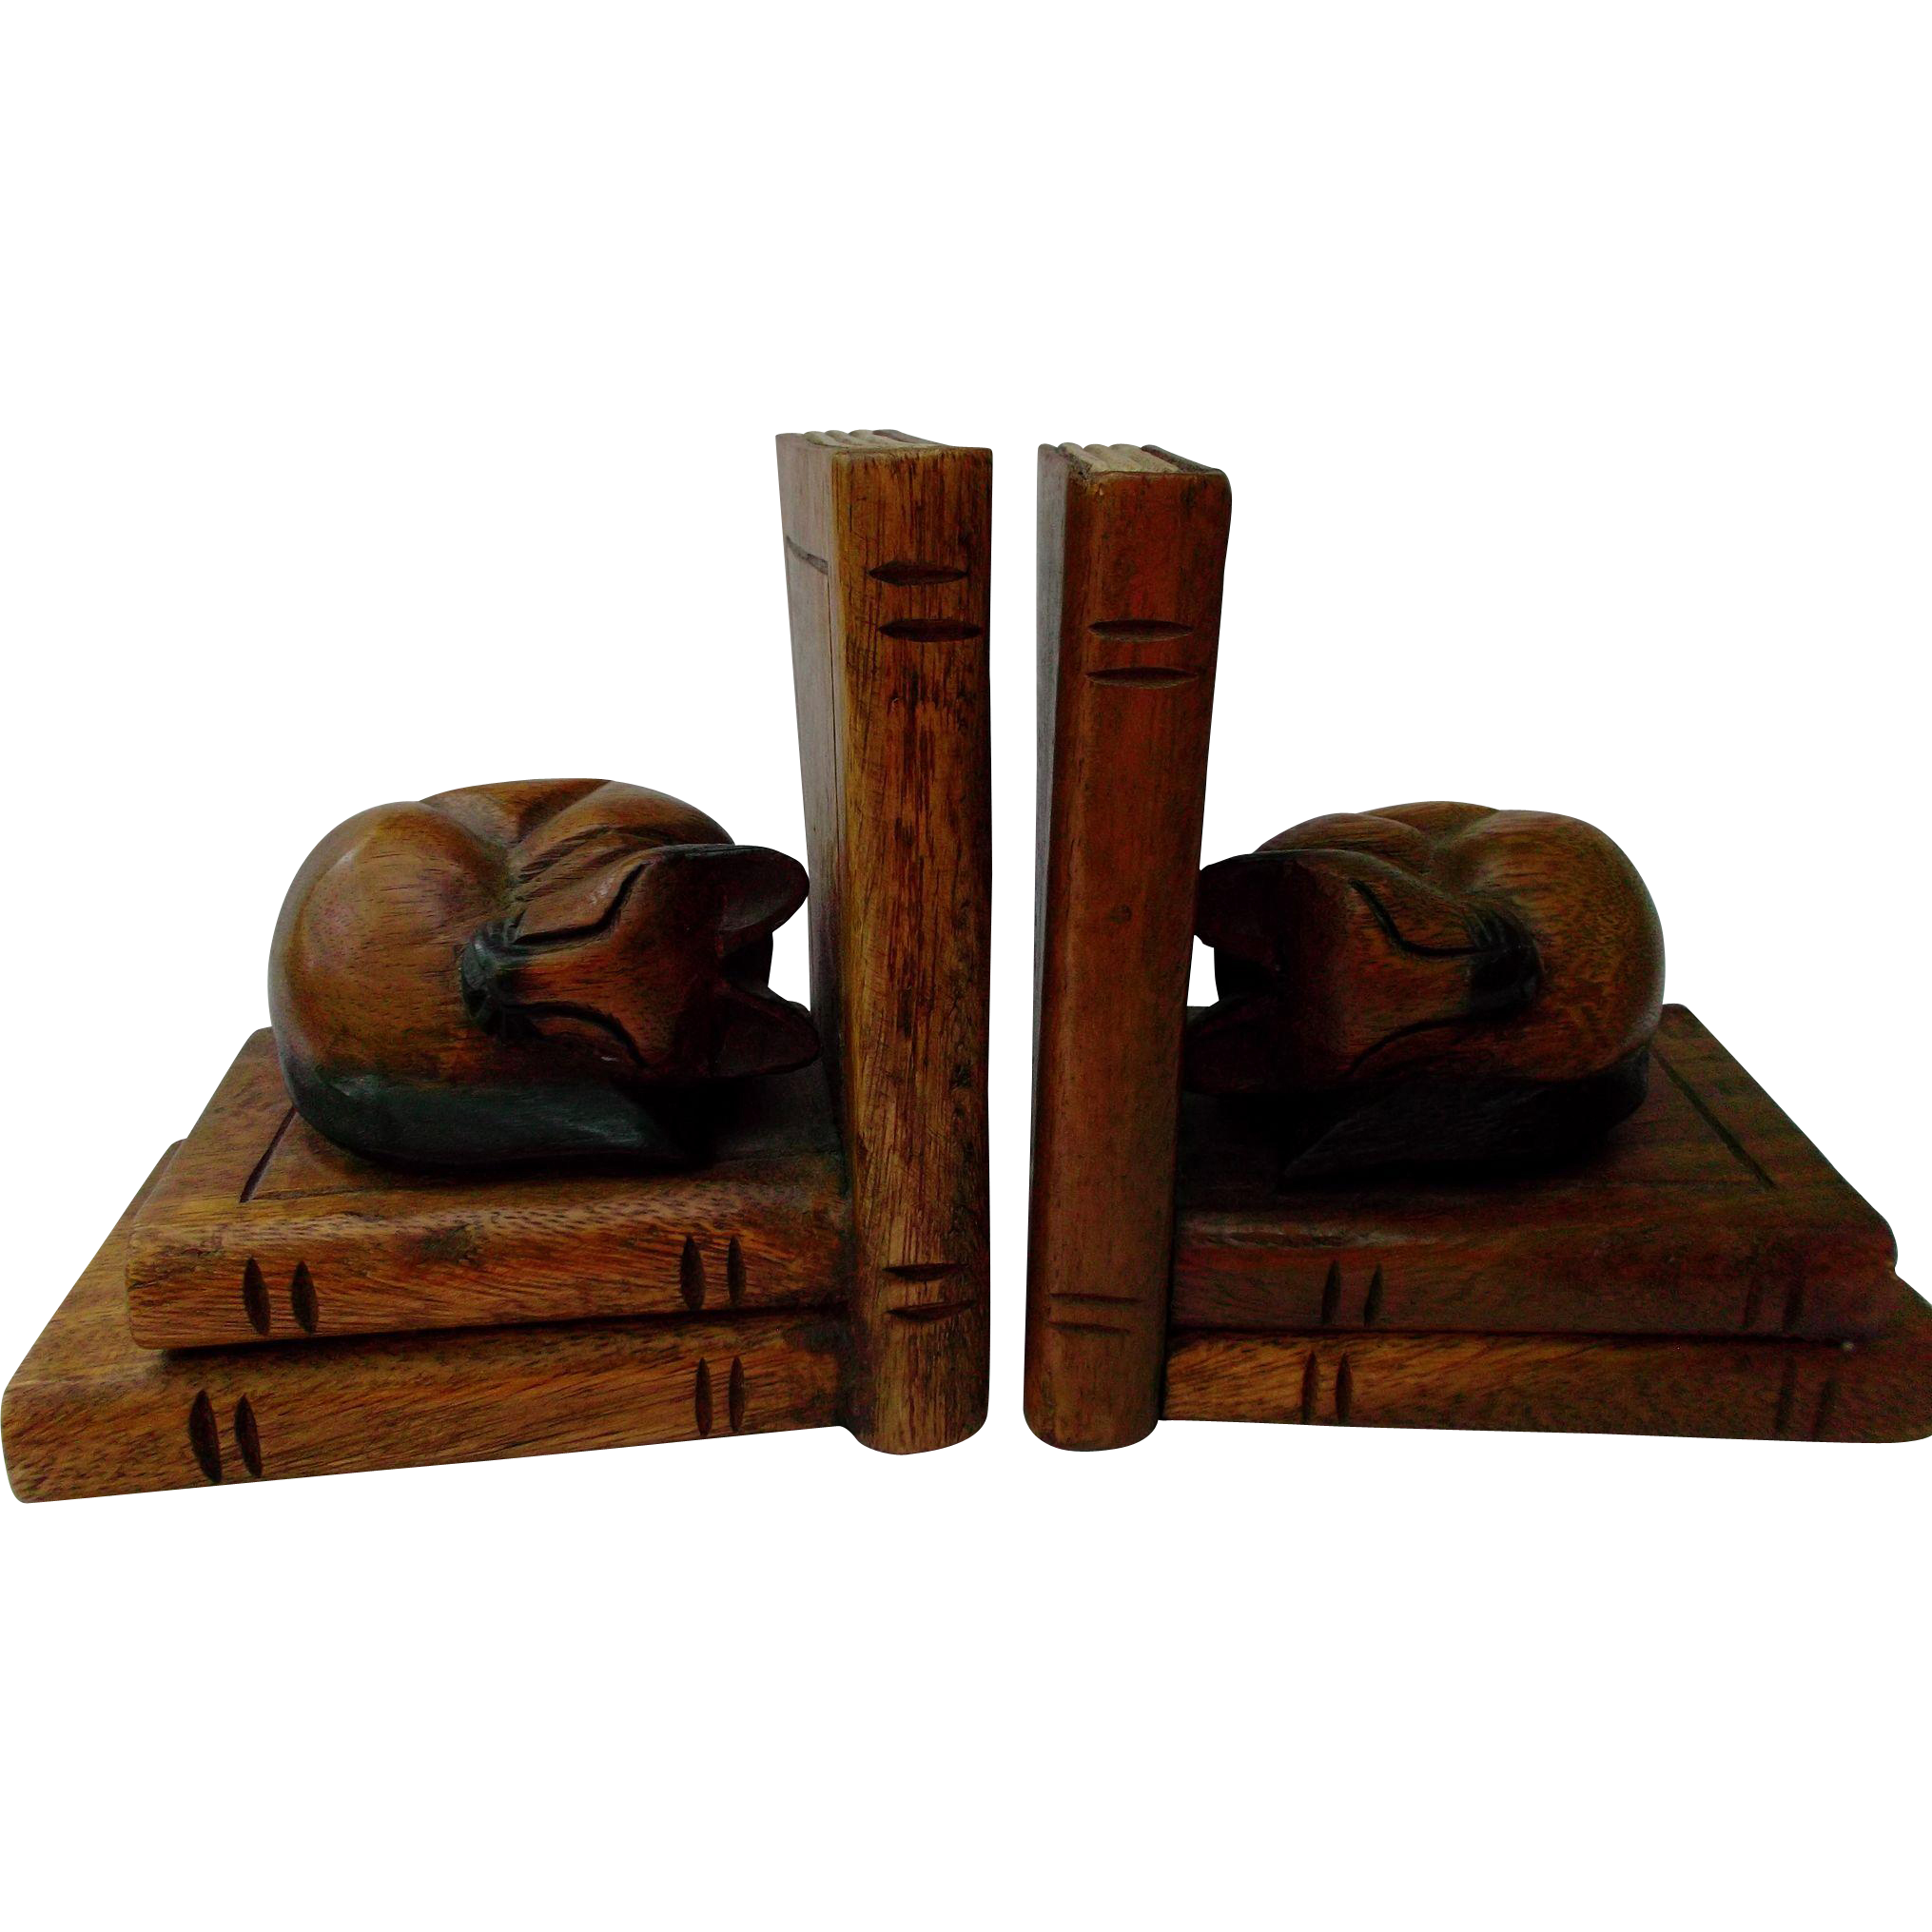 Carved Wood Cat Bookends Vintage Home Decor From